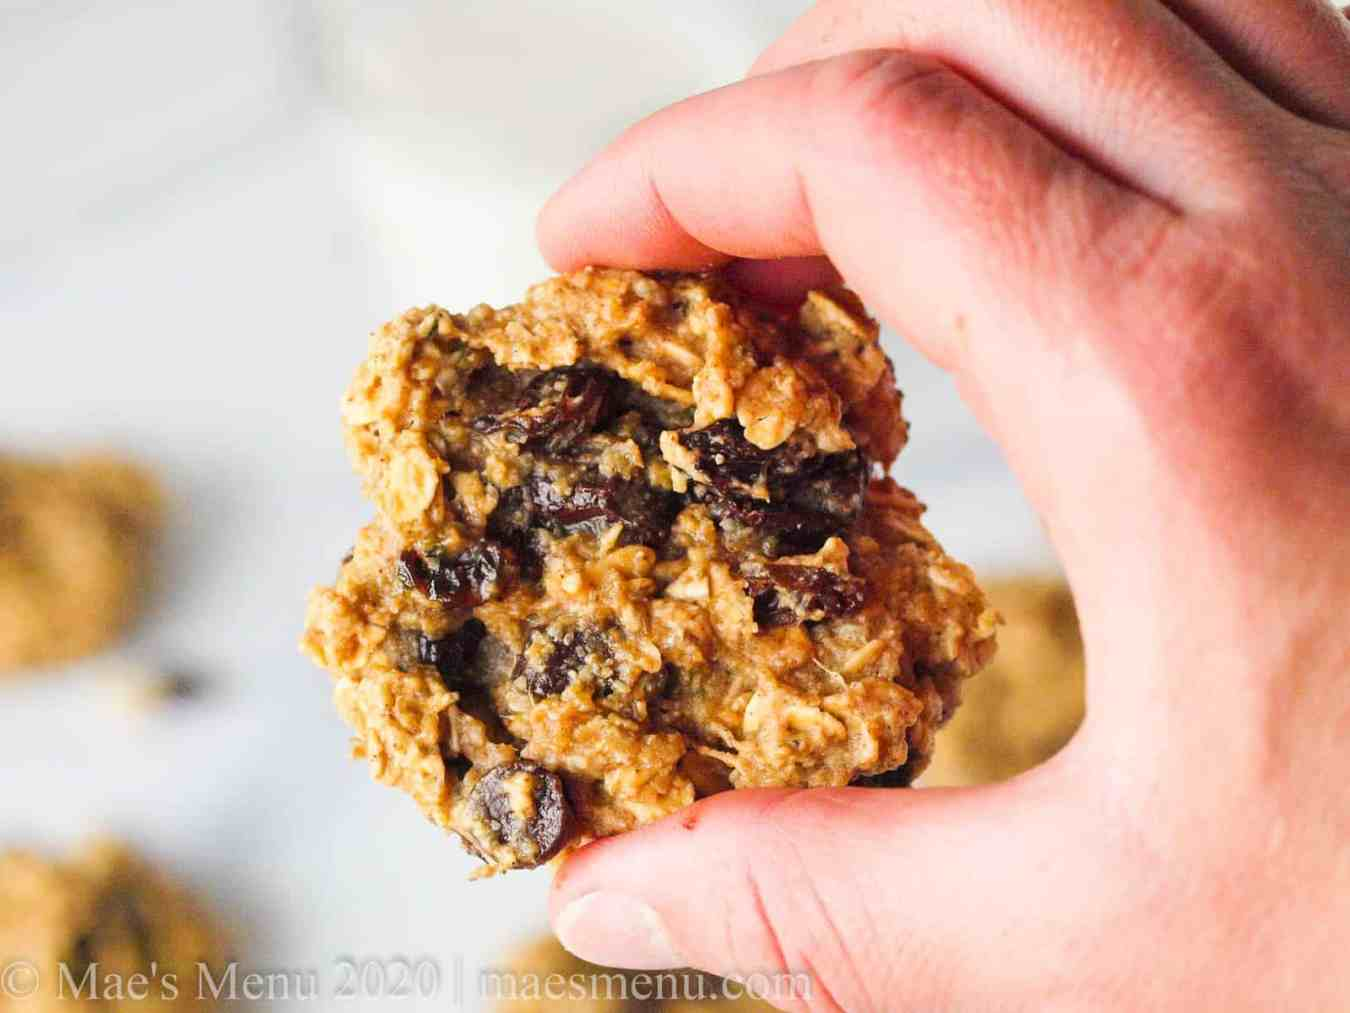 A hand holding an oatmeal protein cookie